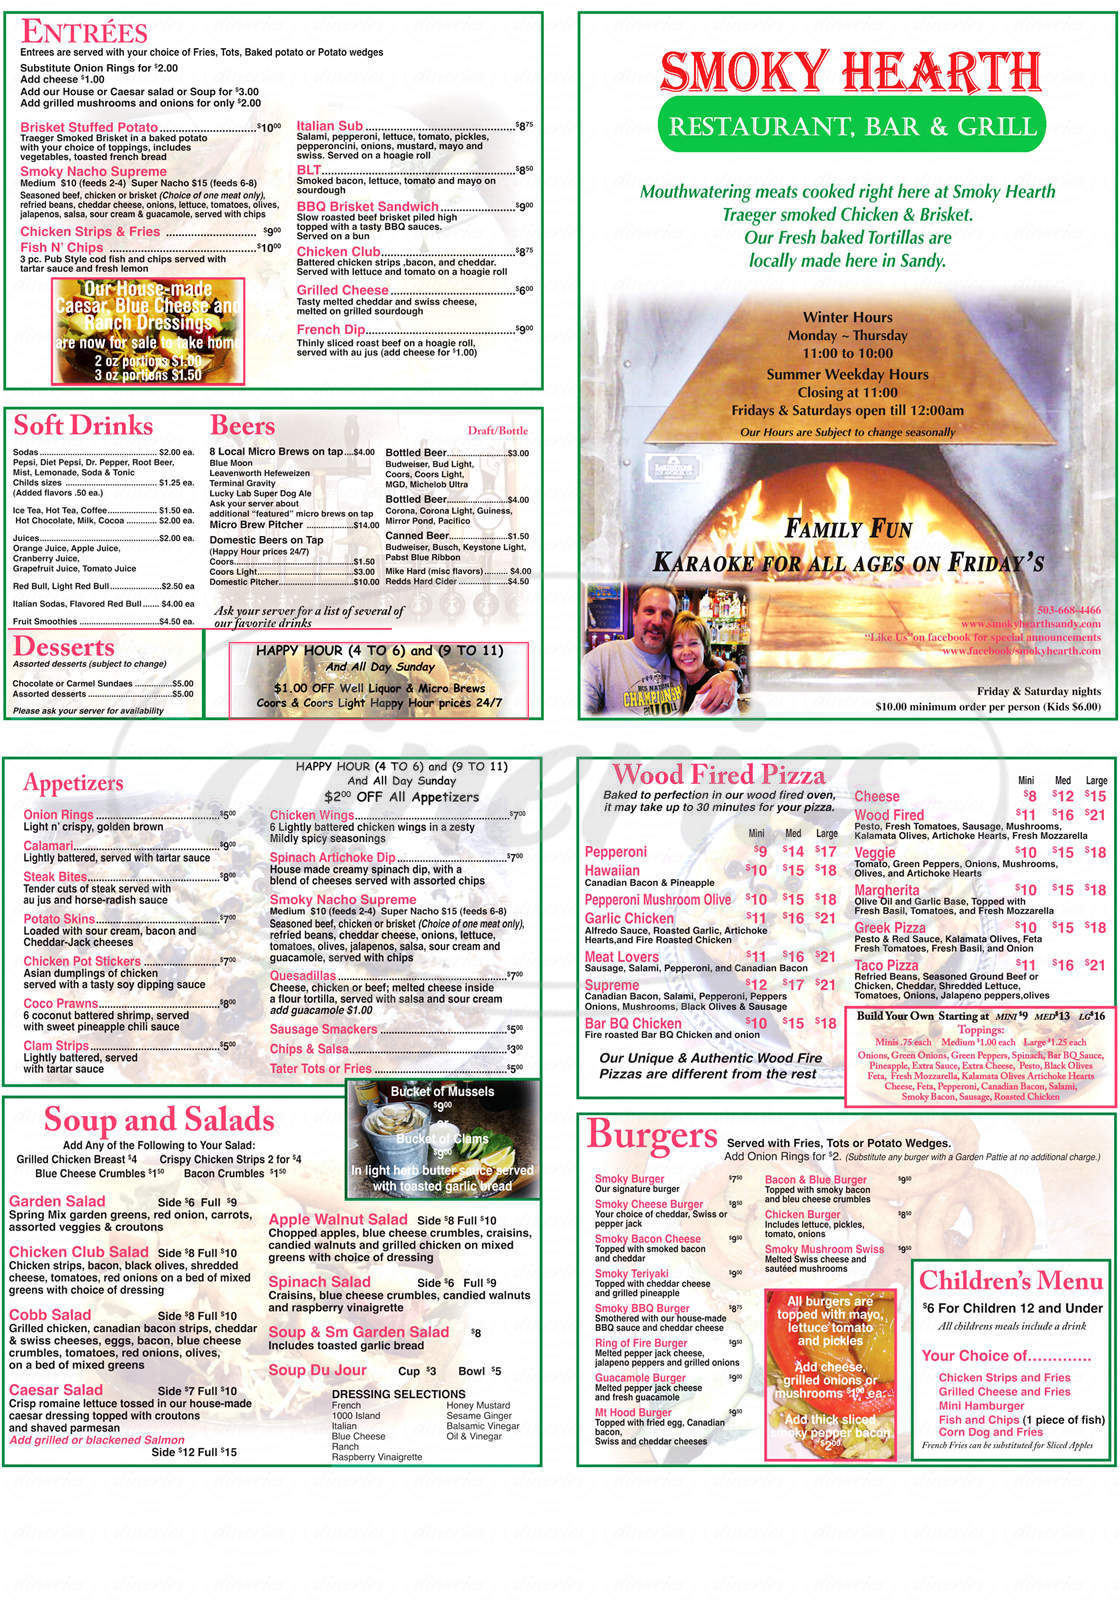 menu for Smoky Hearth Restaurant Bar & Grill